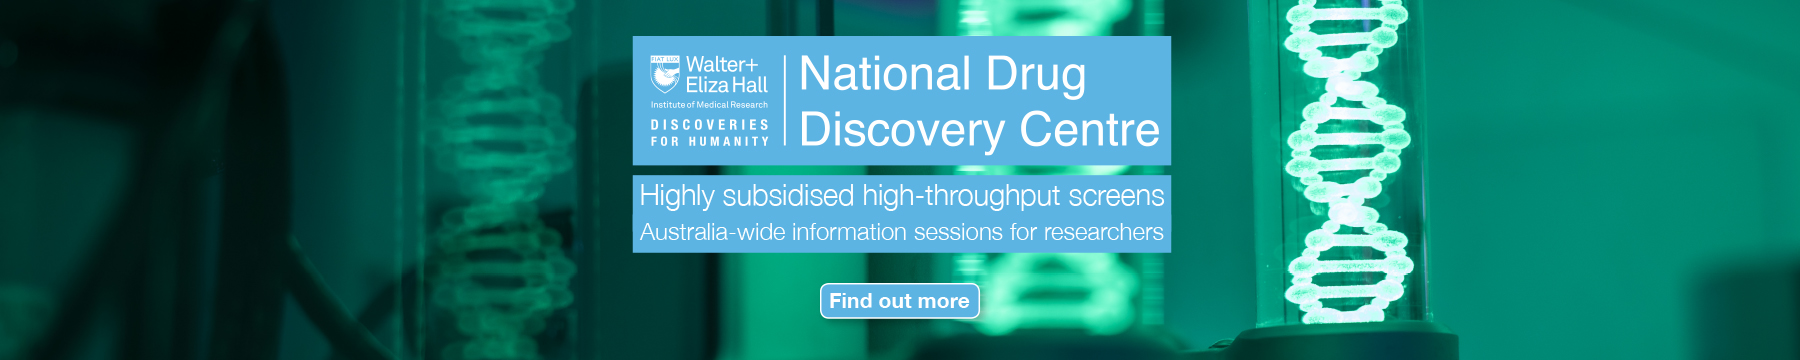 National Drug Discovery Centre information sessions promo